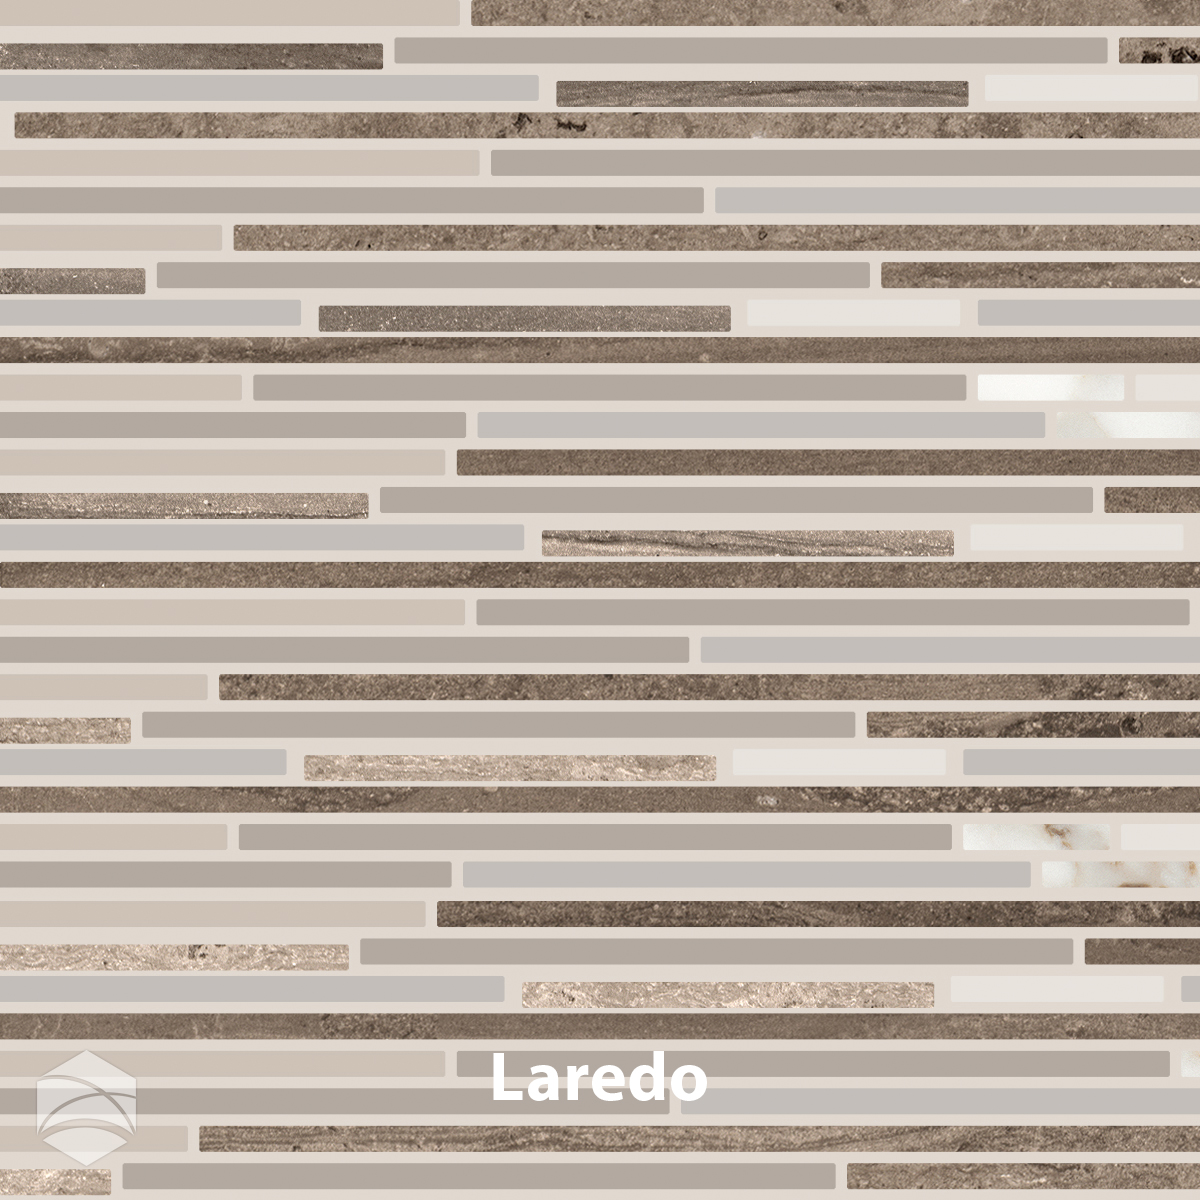 Laredo_Stacked_V2_12x12.jpg